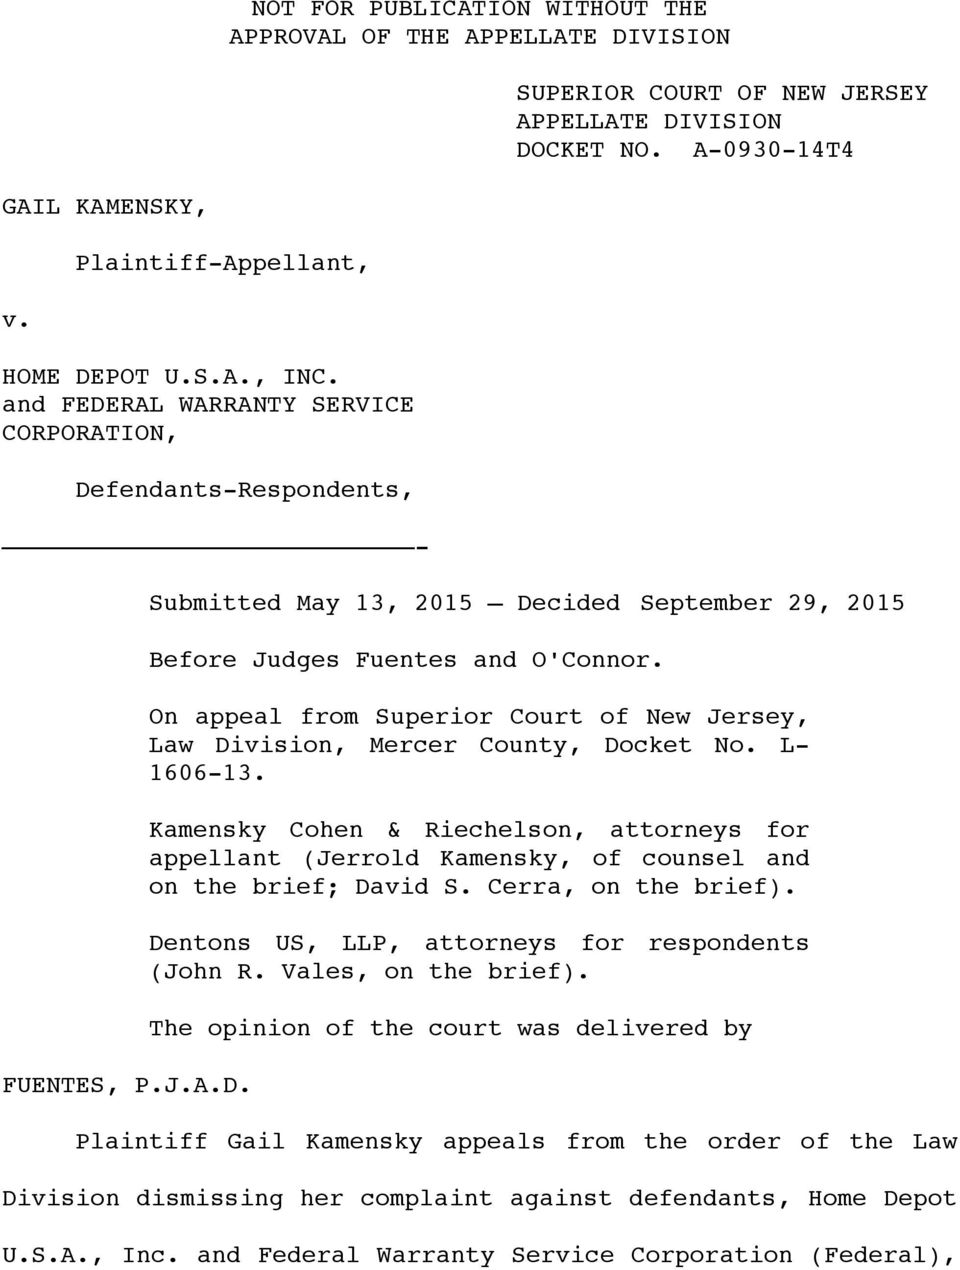 On appeal from Superior Court of New Jersey, Law Division, Mercer County, Docket No. L- 1606-13.